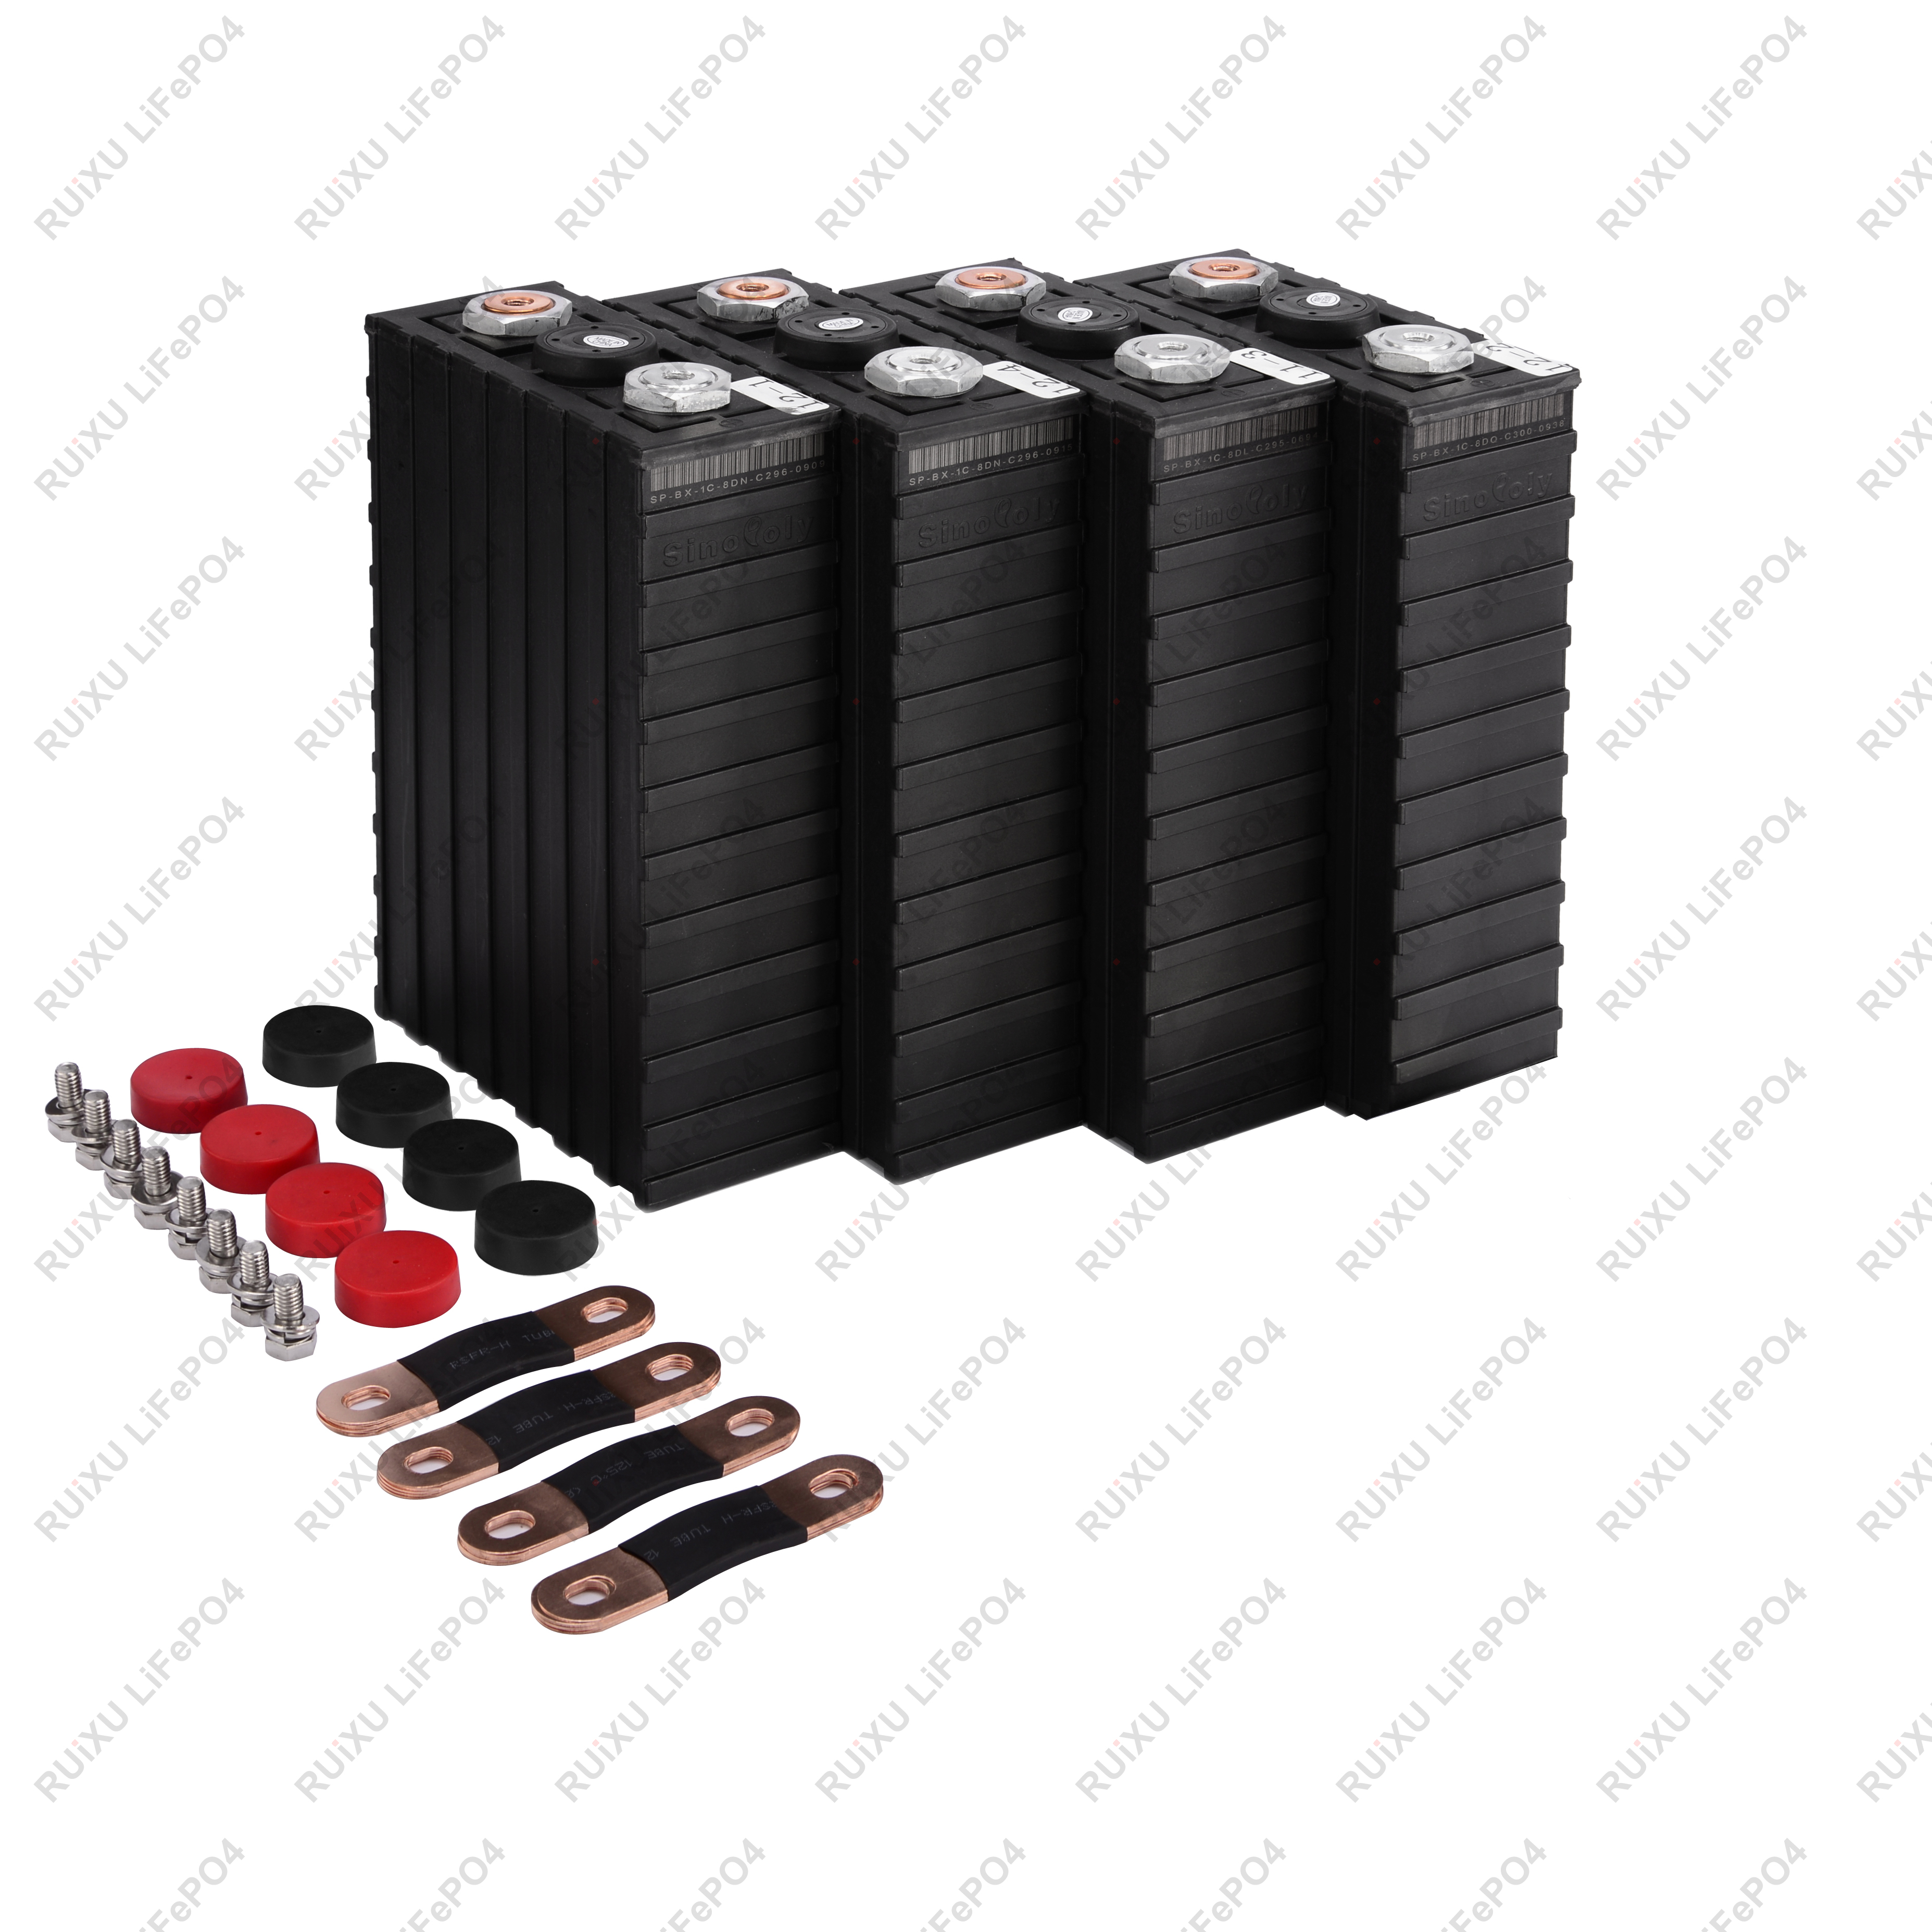 Sinopoly 12V 100Ah Lithium Iron Phosphate Battery Pack, Light Weight LiFePO4 Battery for RV, Solar, Marine image